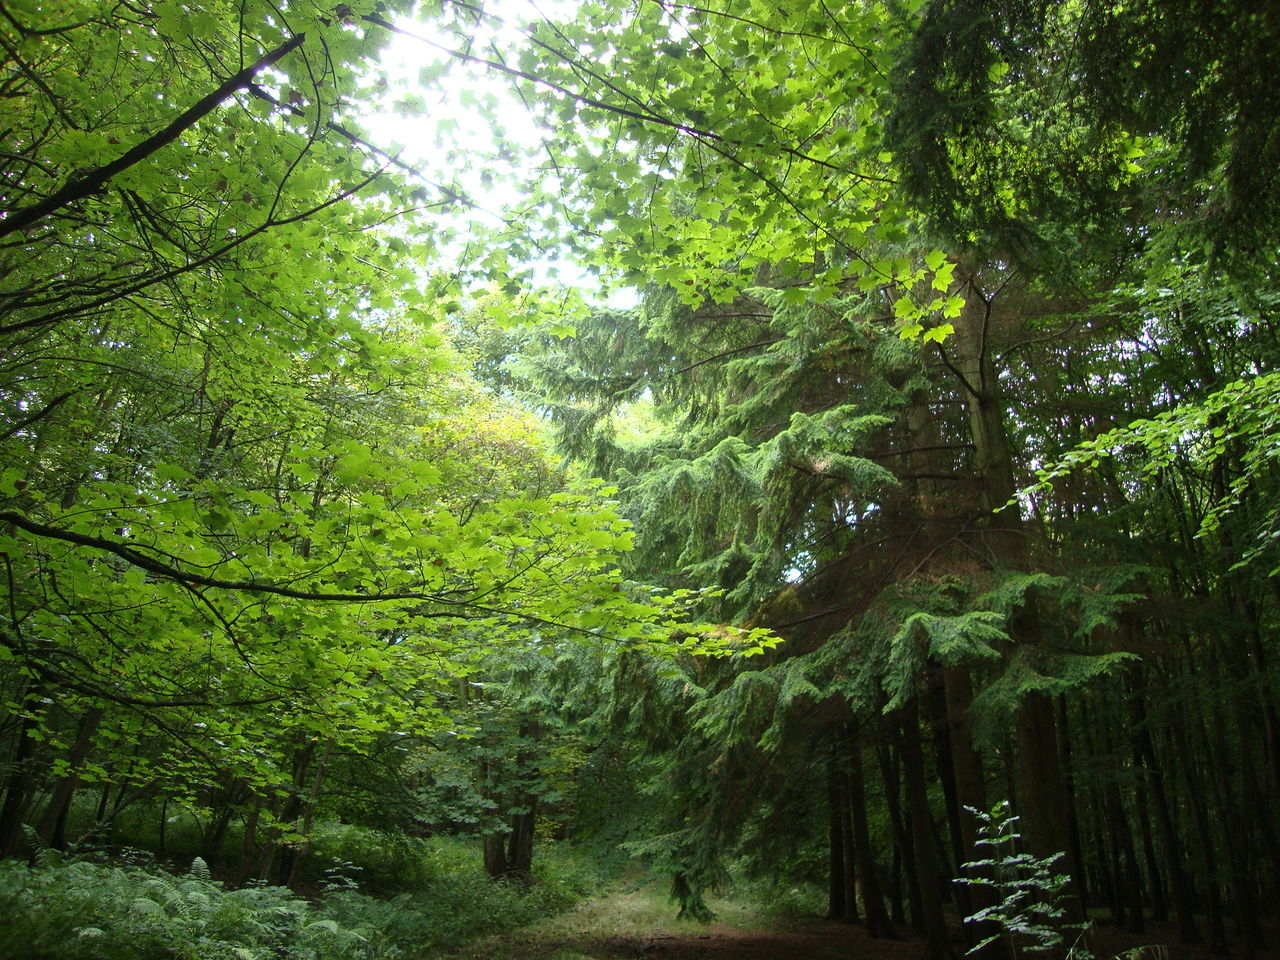 tree, nature, forest, growth, tranquility, beauty in nature, tranquil scene, green color, scenics, day, outdoors, no people, branch